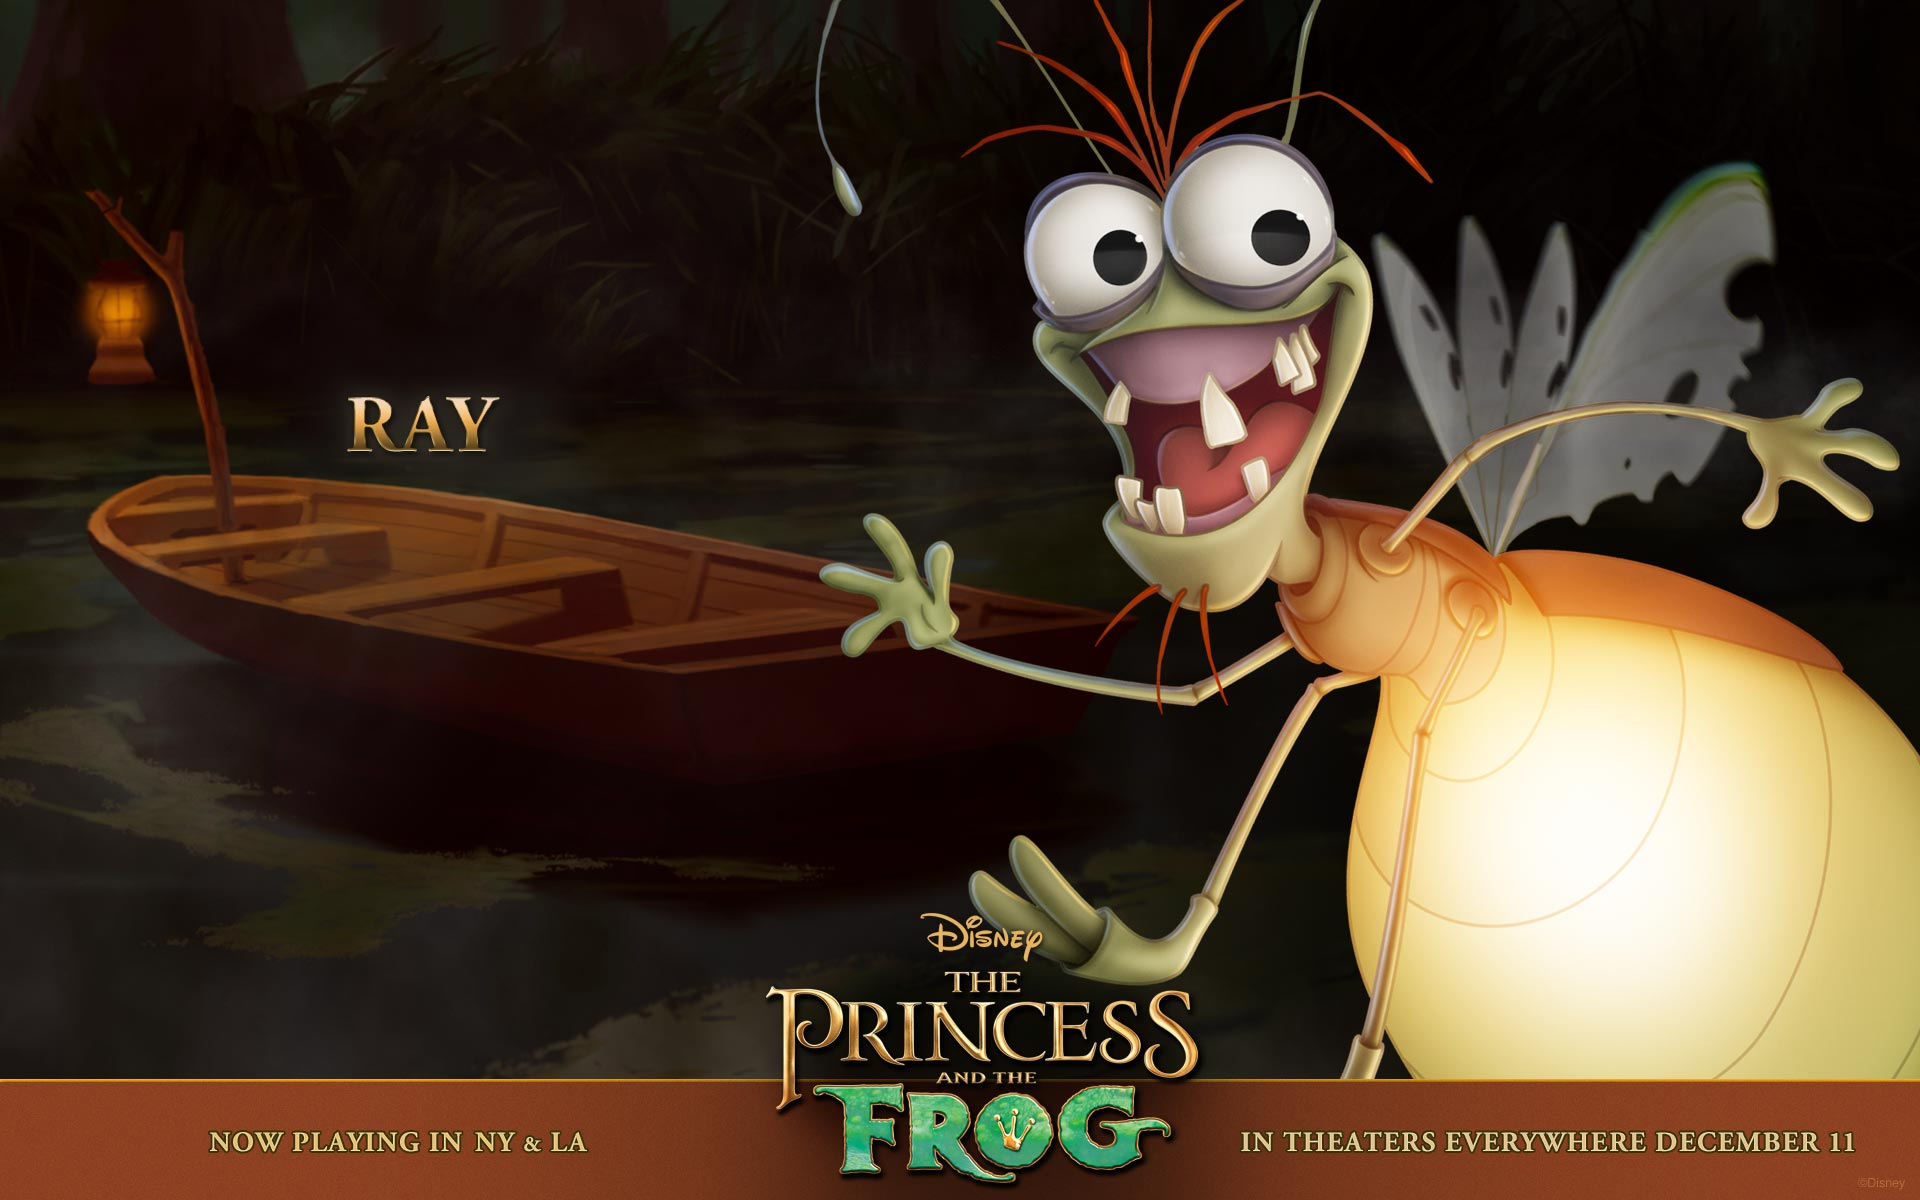 Ray The Firefly From Disney S Princess And The Frog Desktop Wallpaper